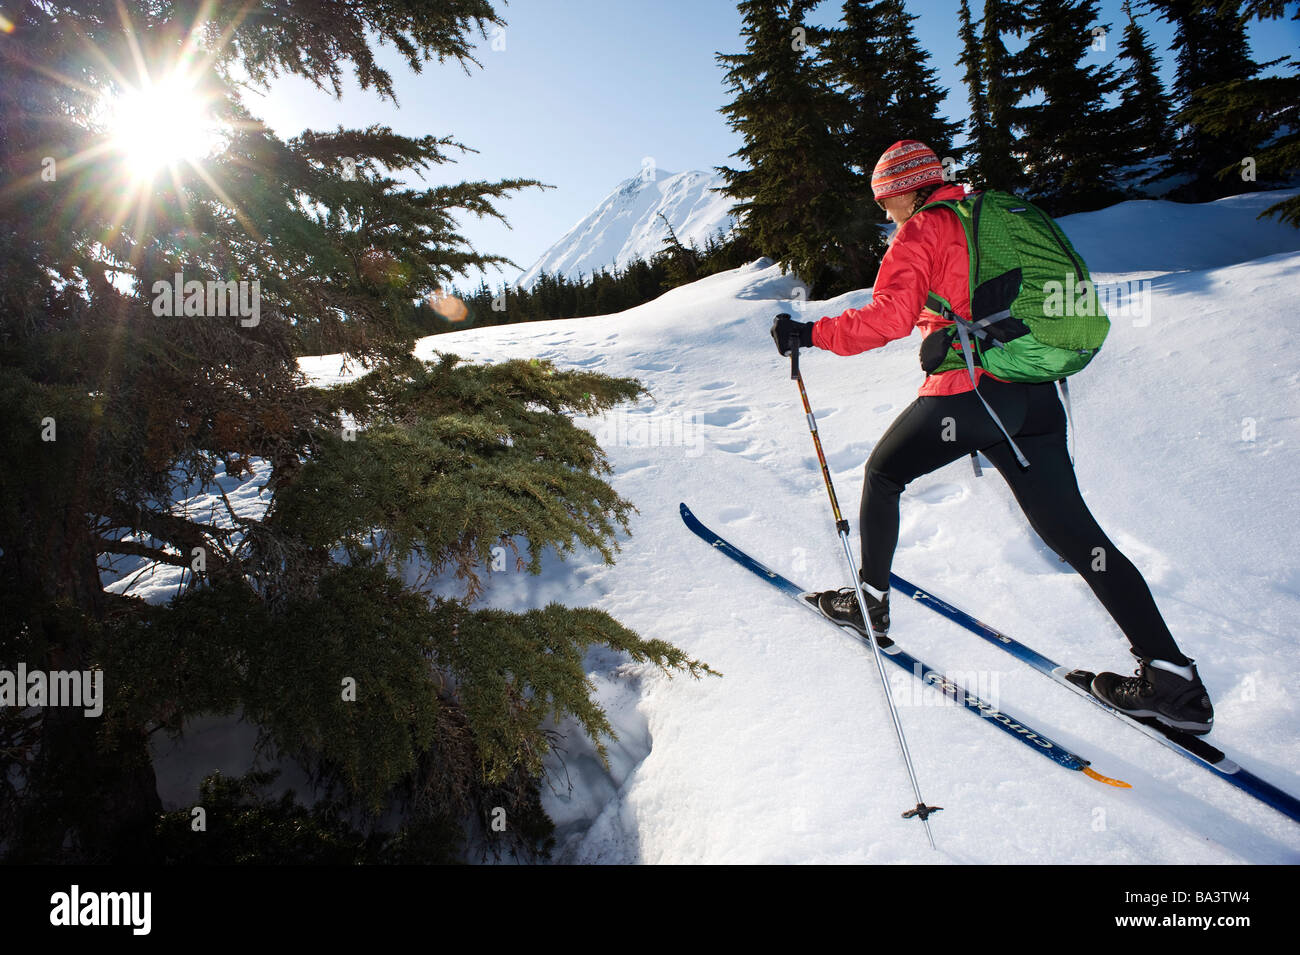 Female skier tours the Center Ridge area in Turnagain Pass of Chugach National Forest, Alaska - Stock Image